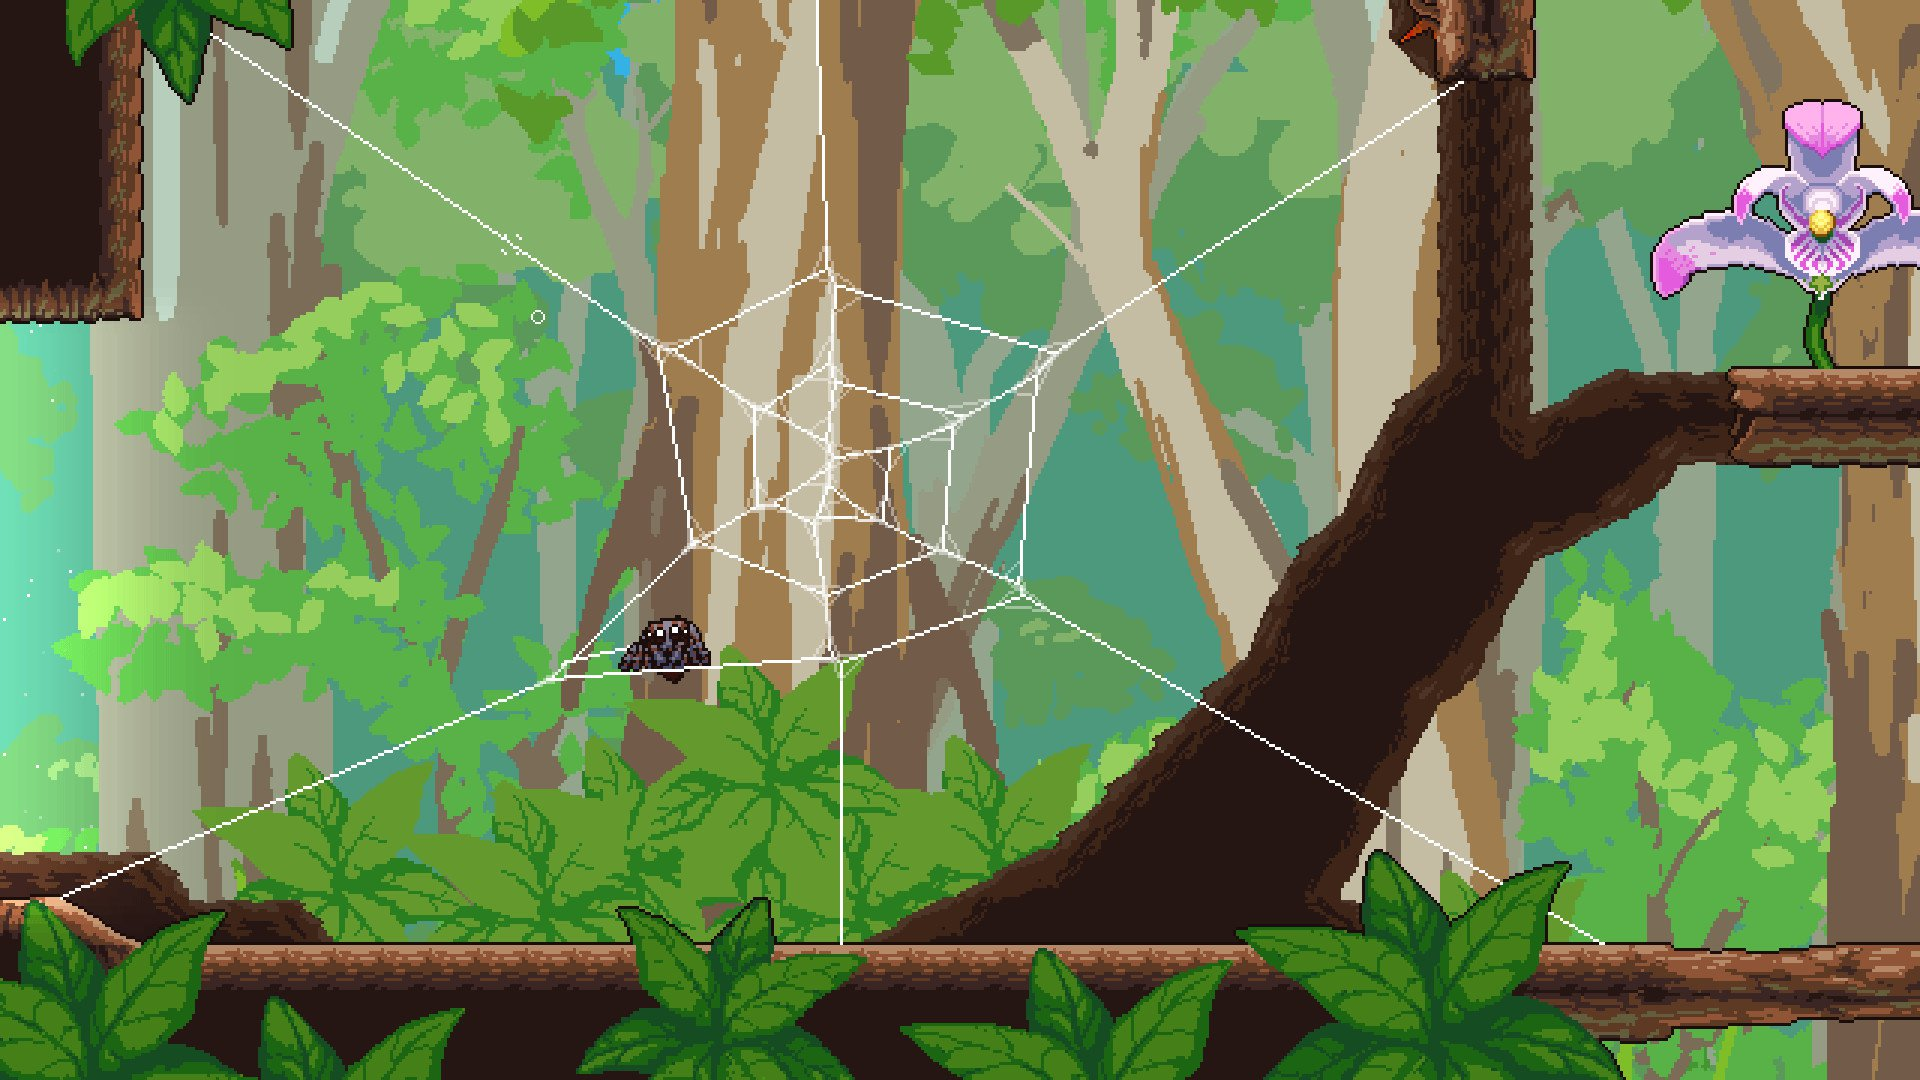 Peacock spider sitting in a web - screenshot from 'Webbed' (2021) Sbug Games